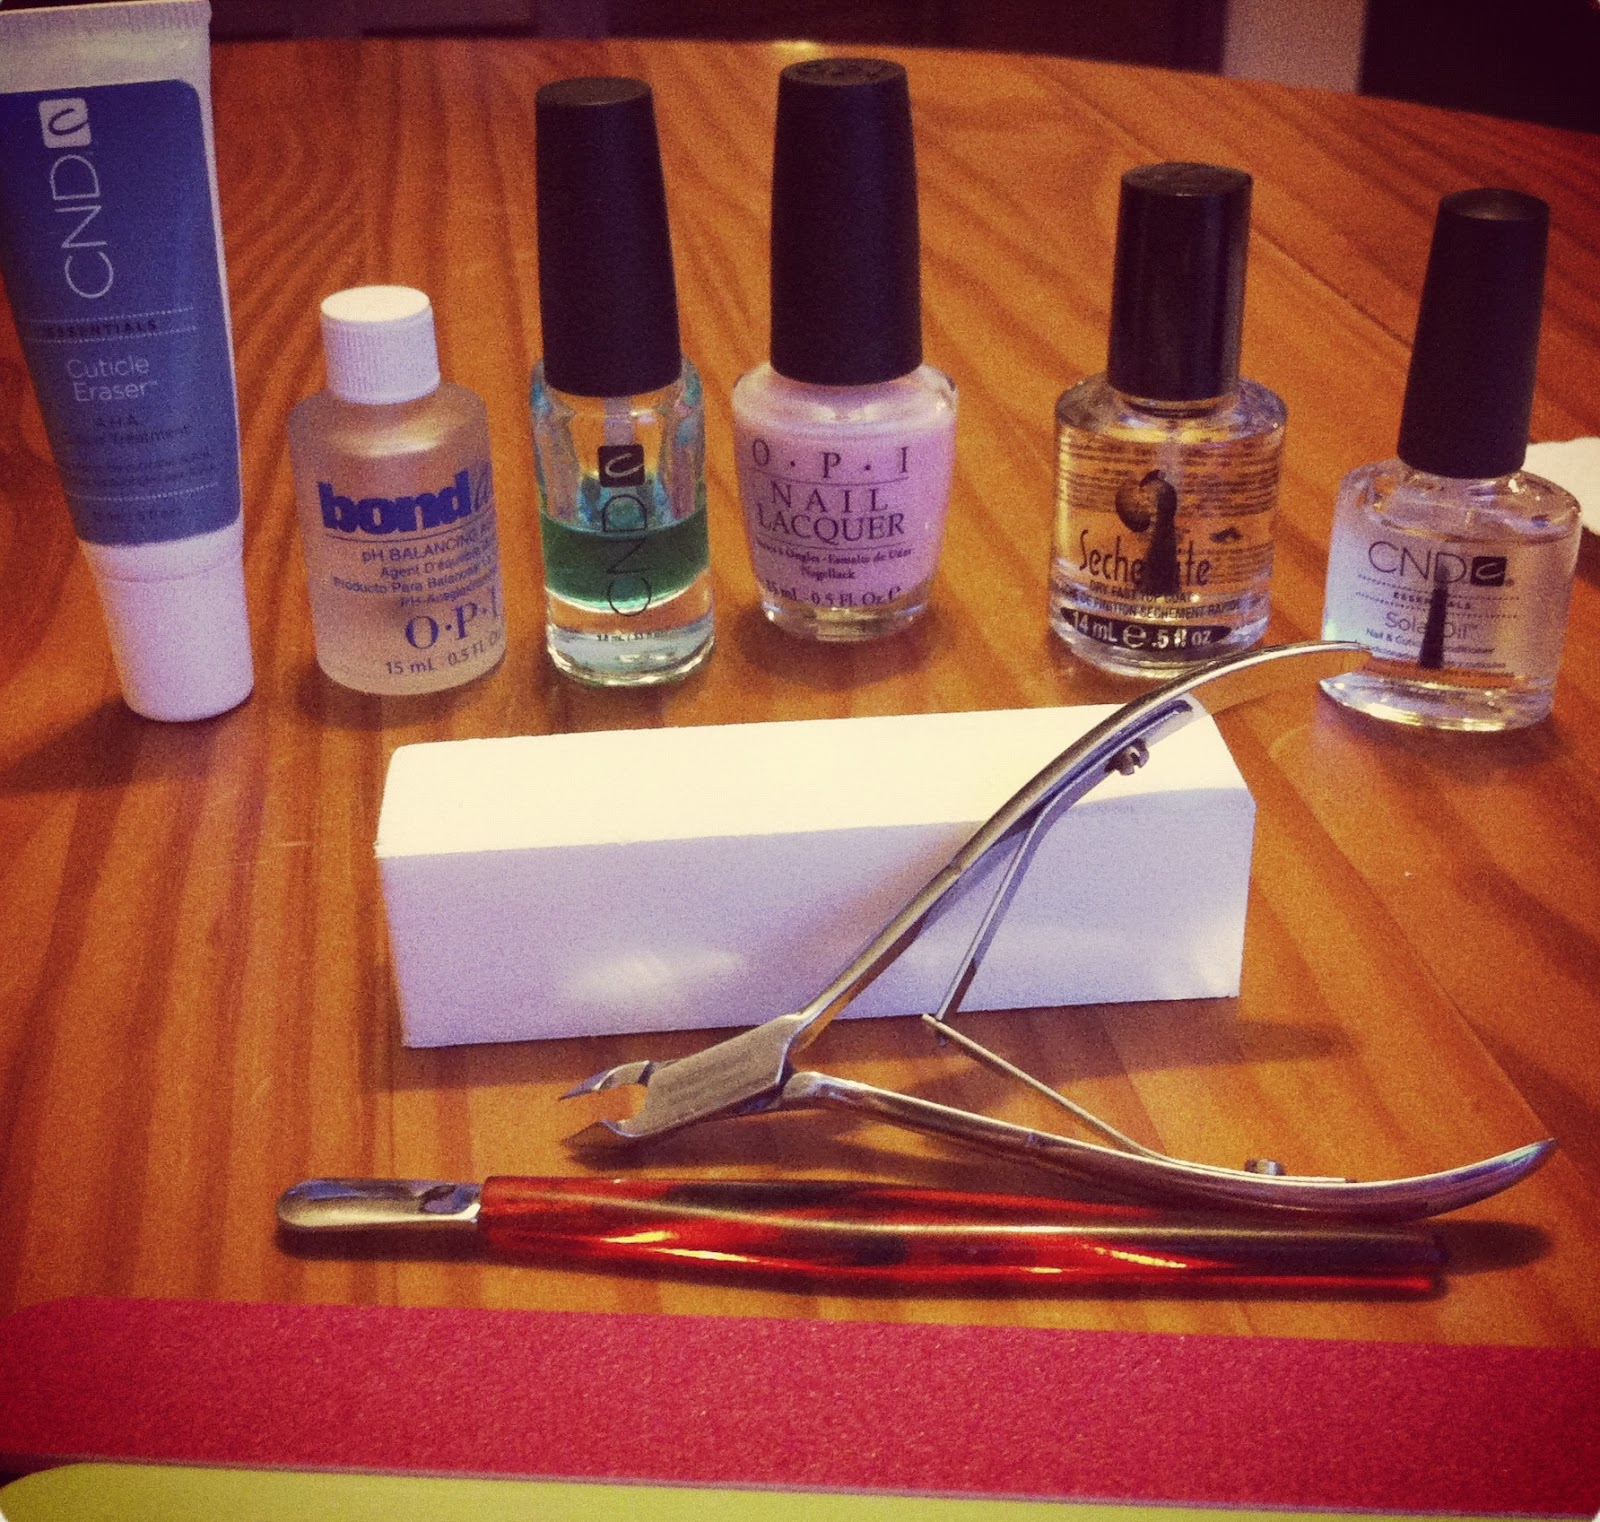 at home manicure, OPI, CND, nail polish, Seche Vite, nail files, cuticle cutters, nail polish tips & tricks